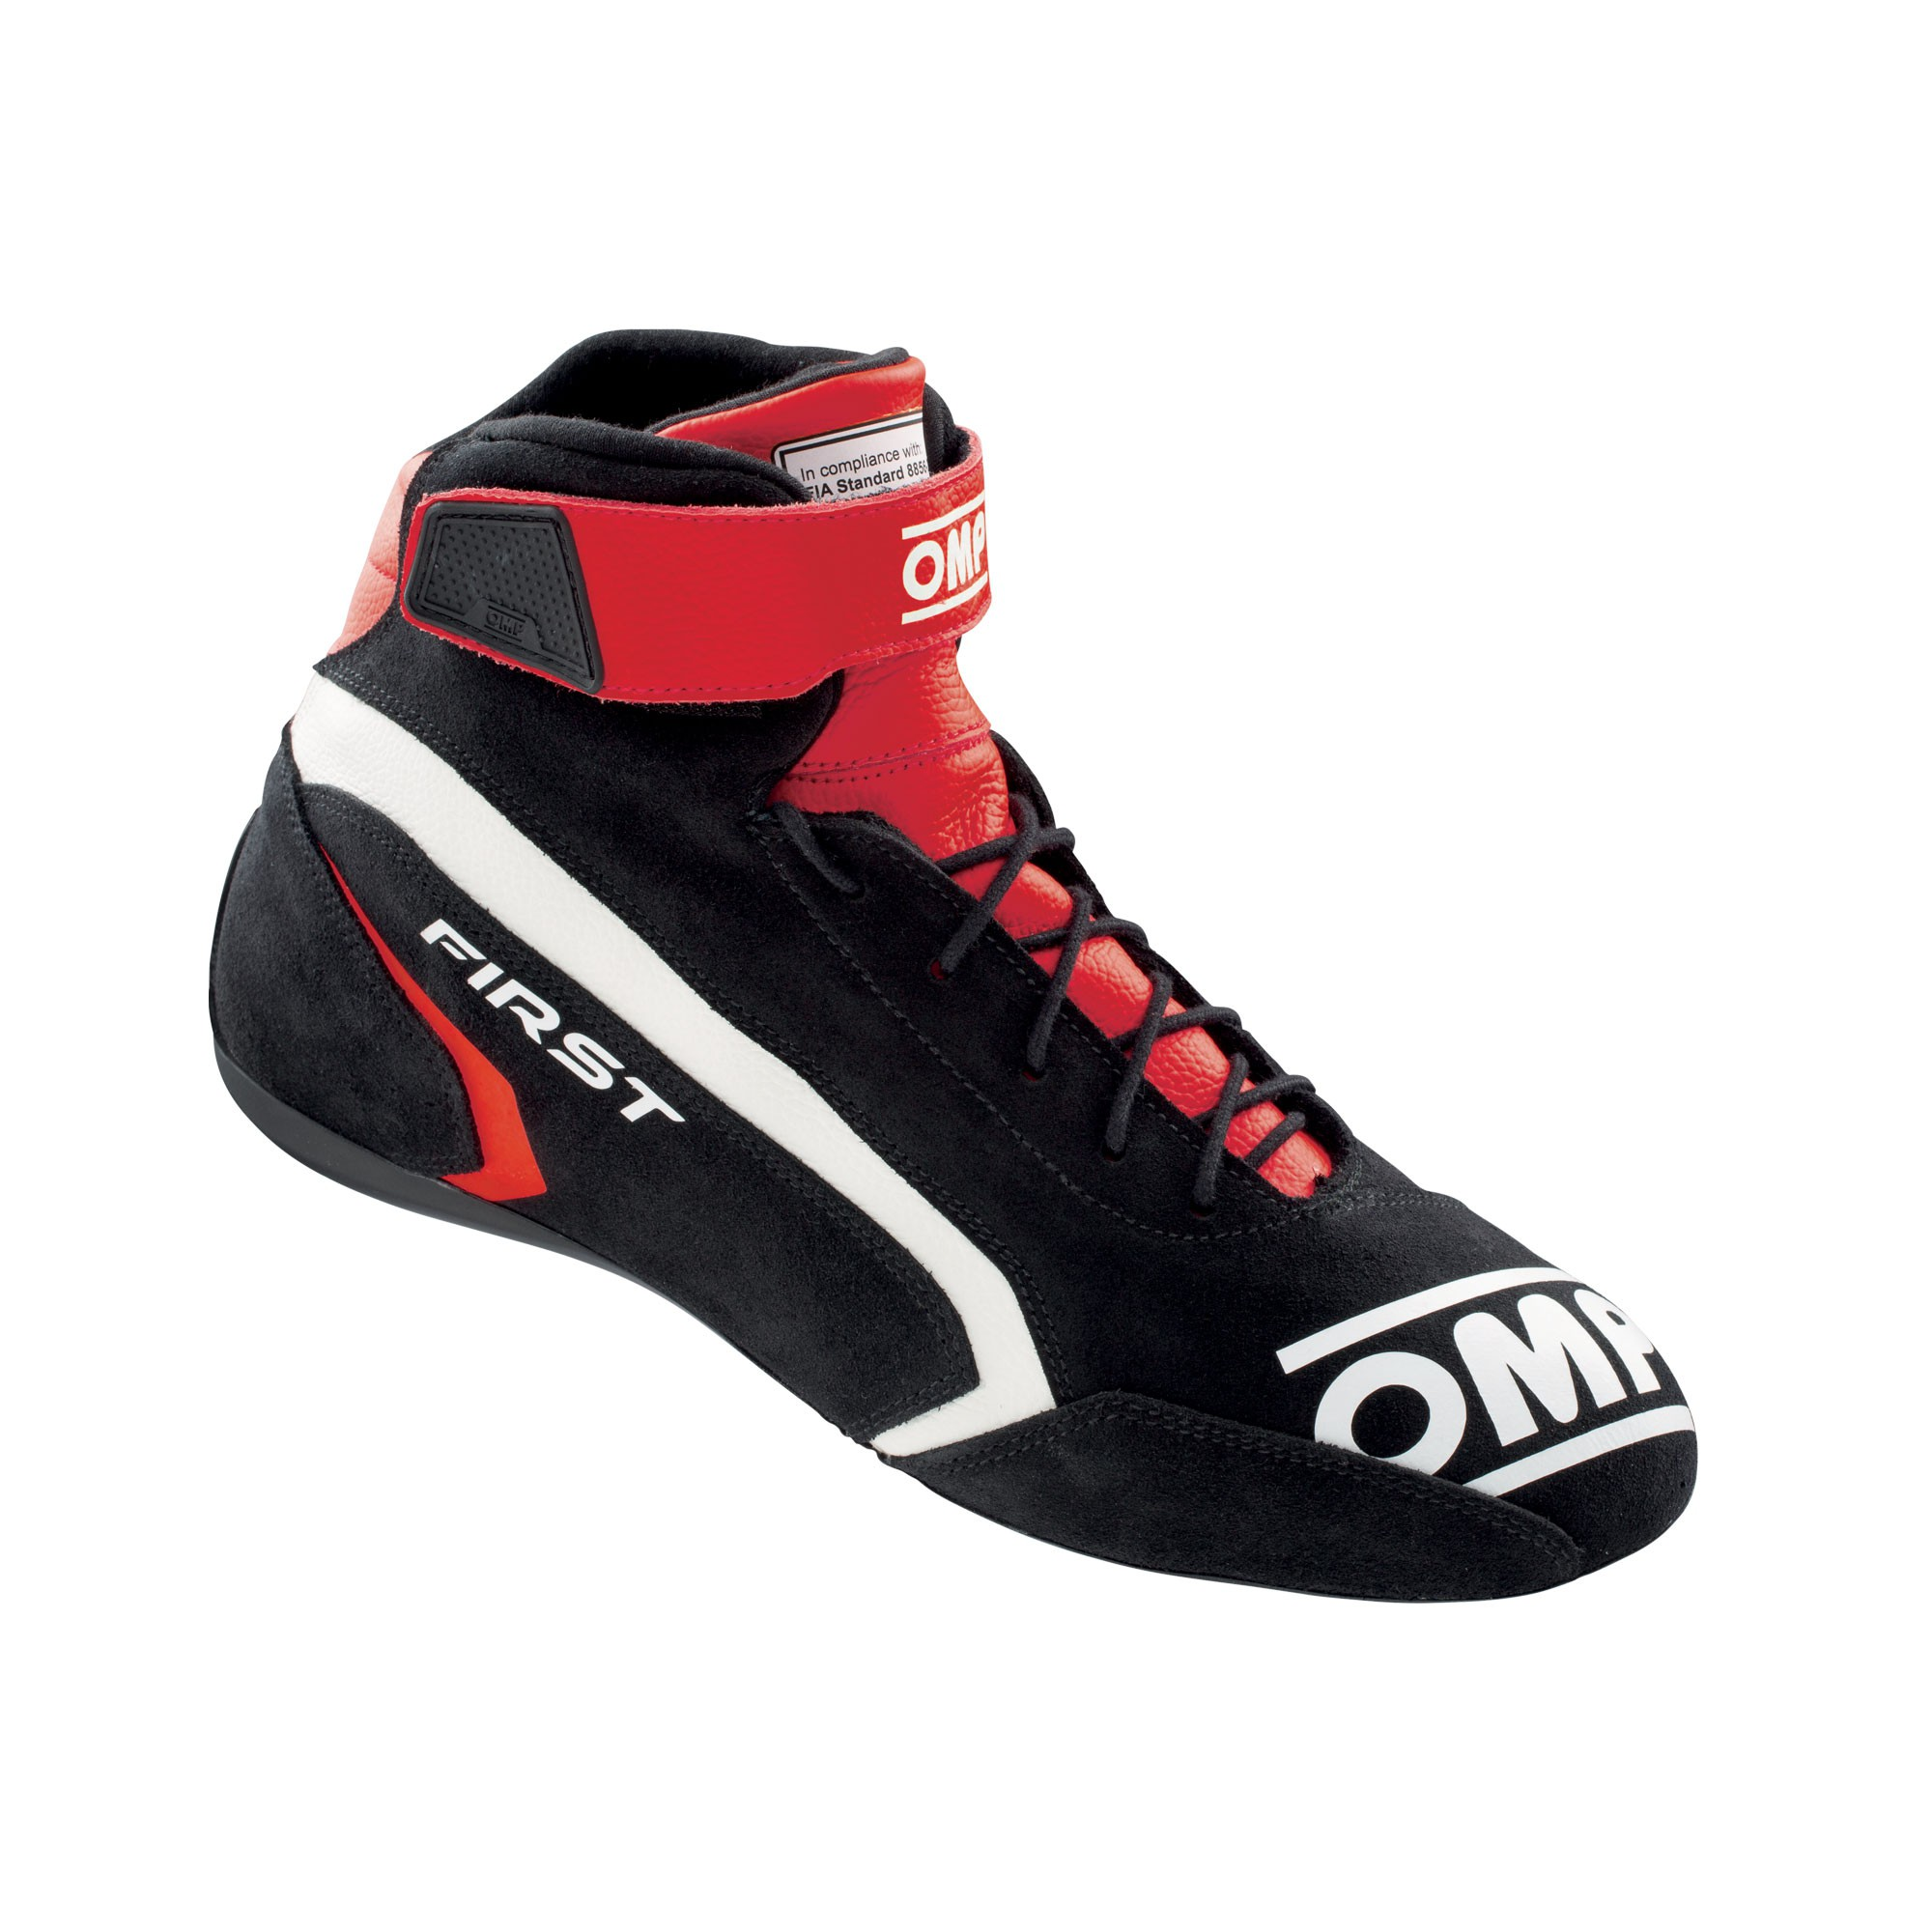 FIRST SHOES my2021 RED/BLACK TG. 37 FIA 8856-2018